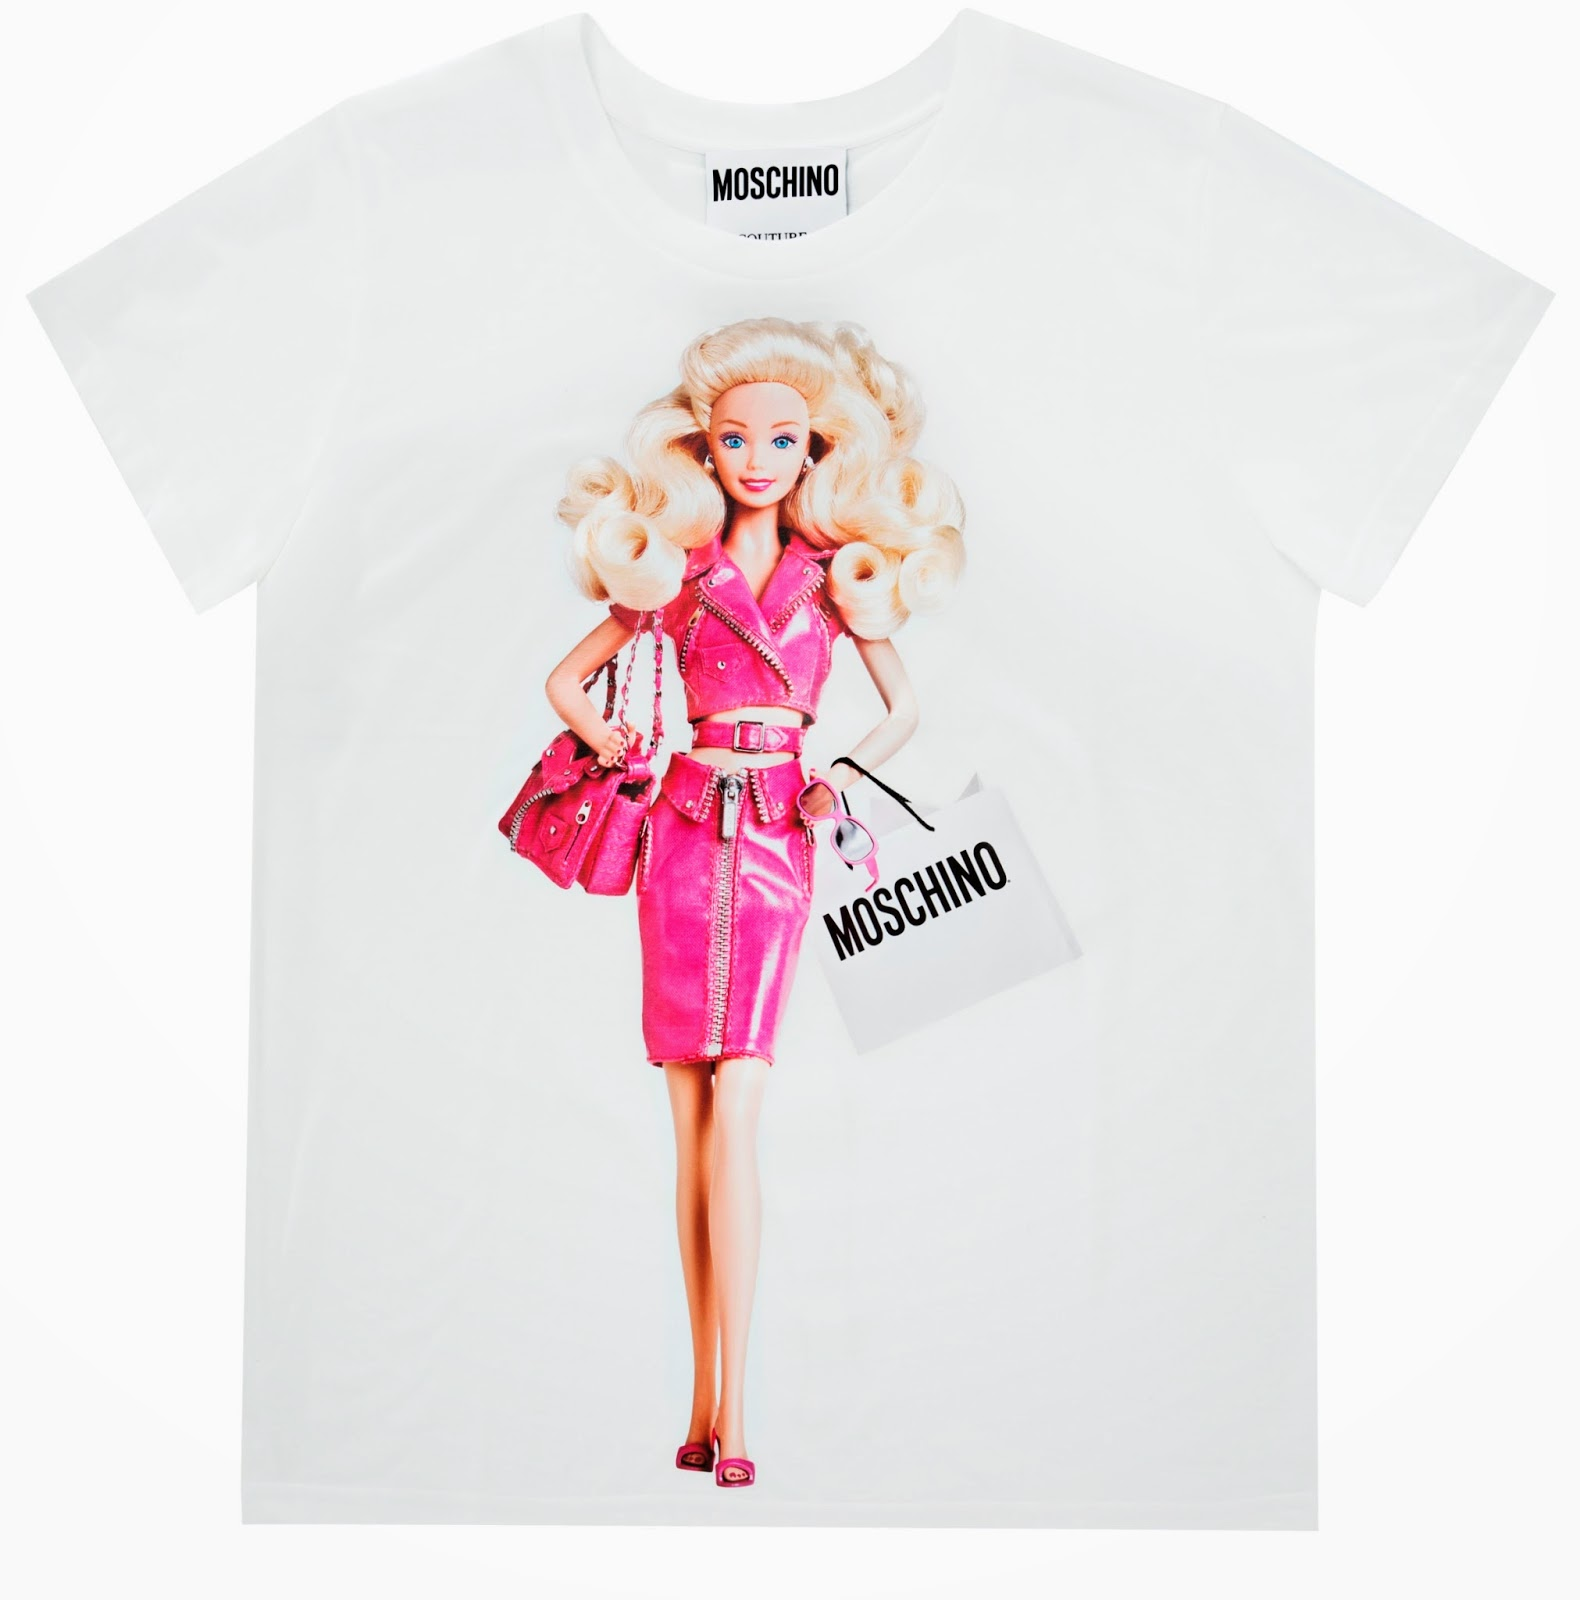 09 - MOSCHINO CAPSULE COLLECTION SS15.jpg